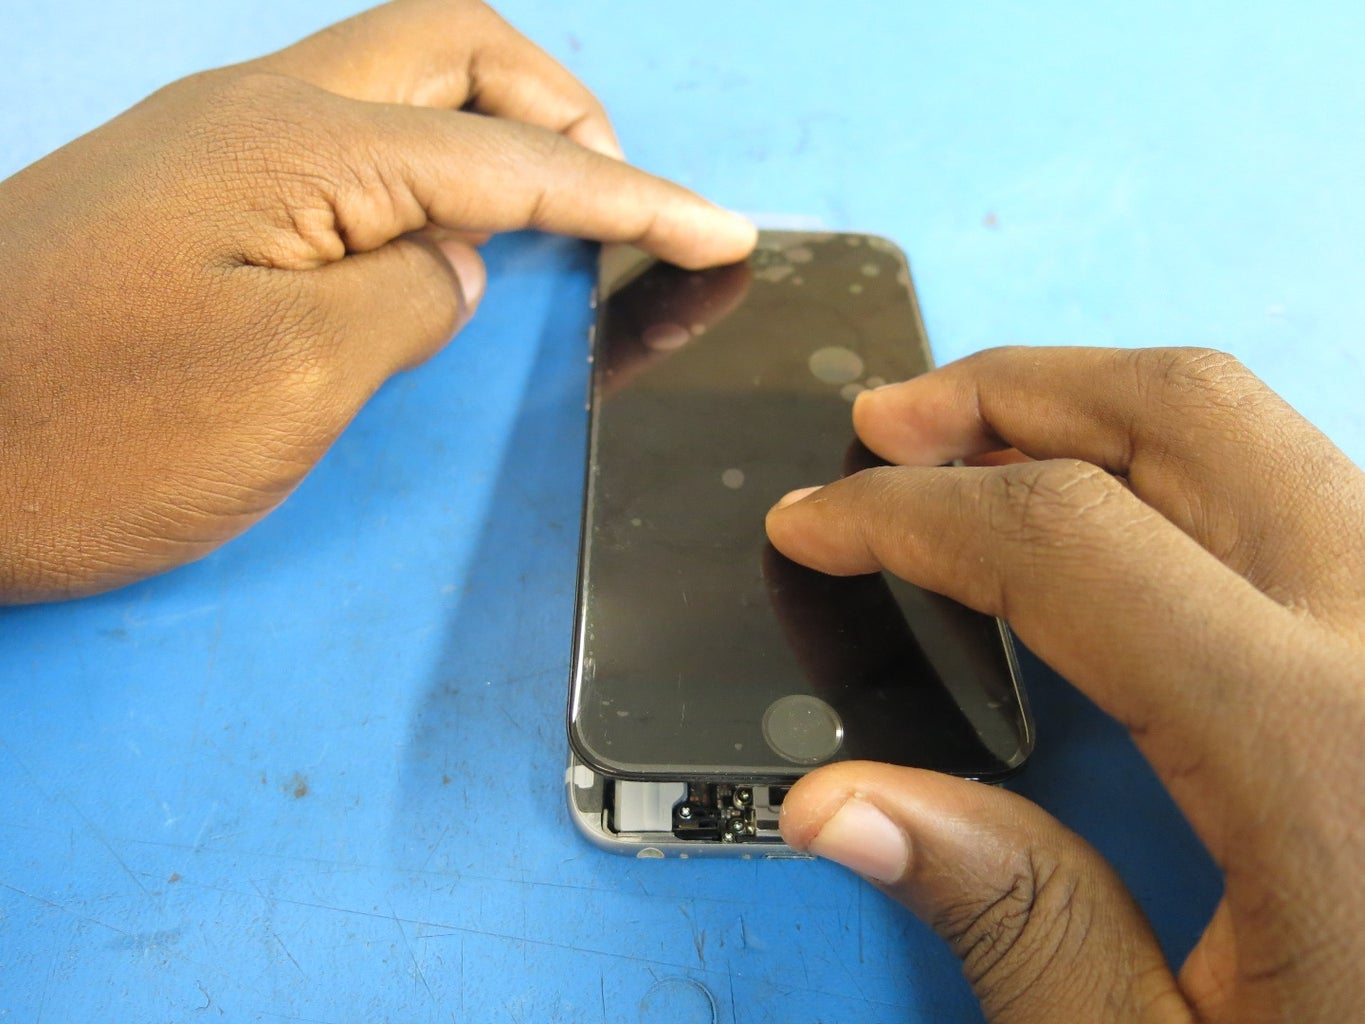 Closing the IPhone